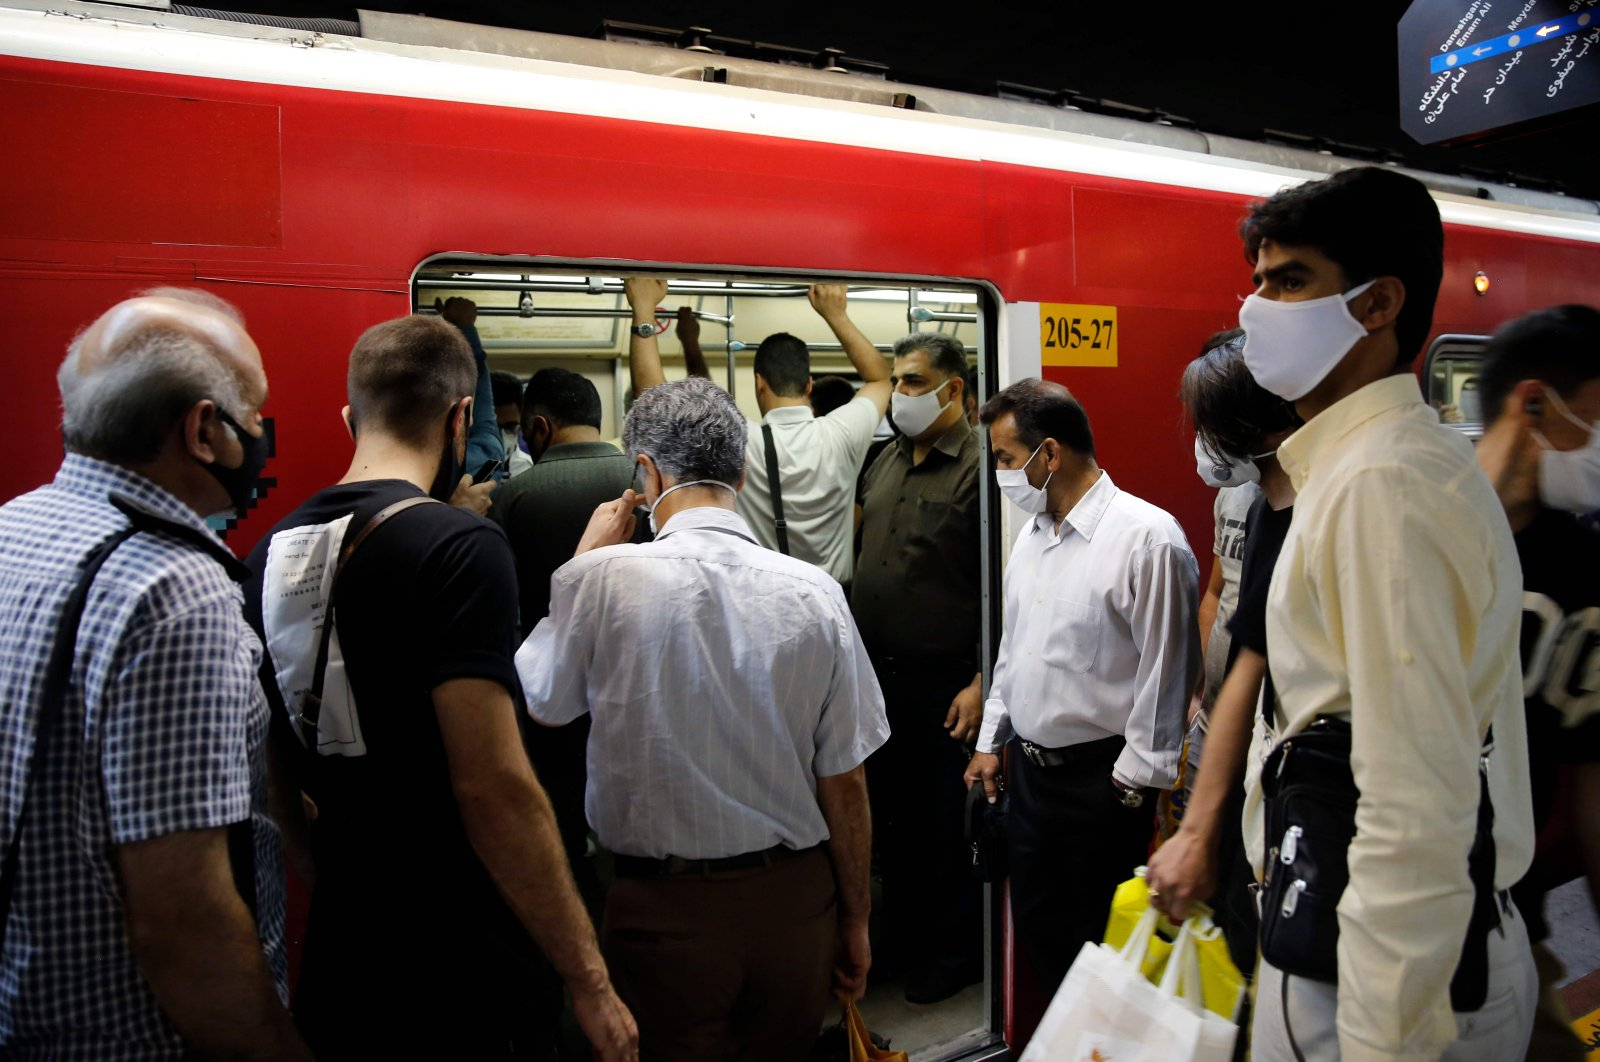 Iranians, mostly wearing face masks, are pictured at a metro station in the capital Tehran on June 10, 2020, amid the COVID-19 pandemic. (AFP Photo)